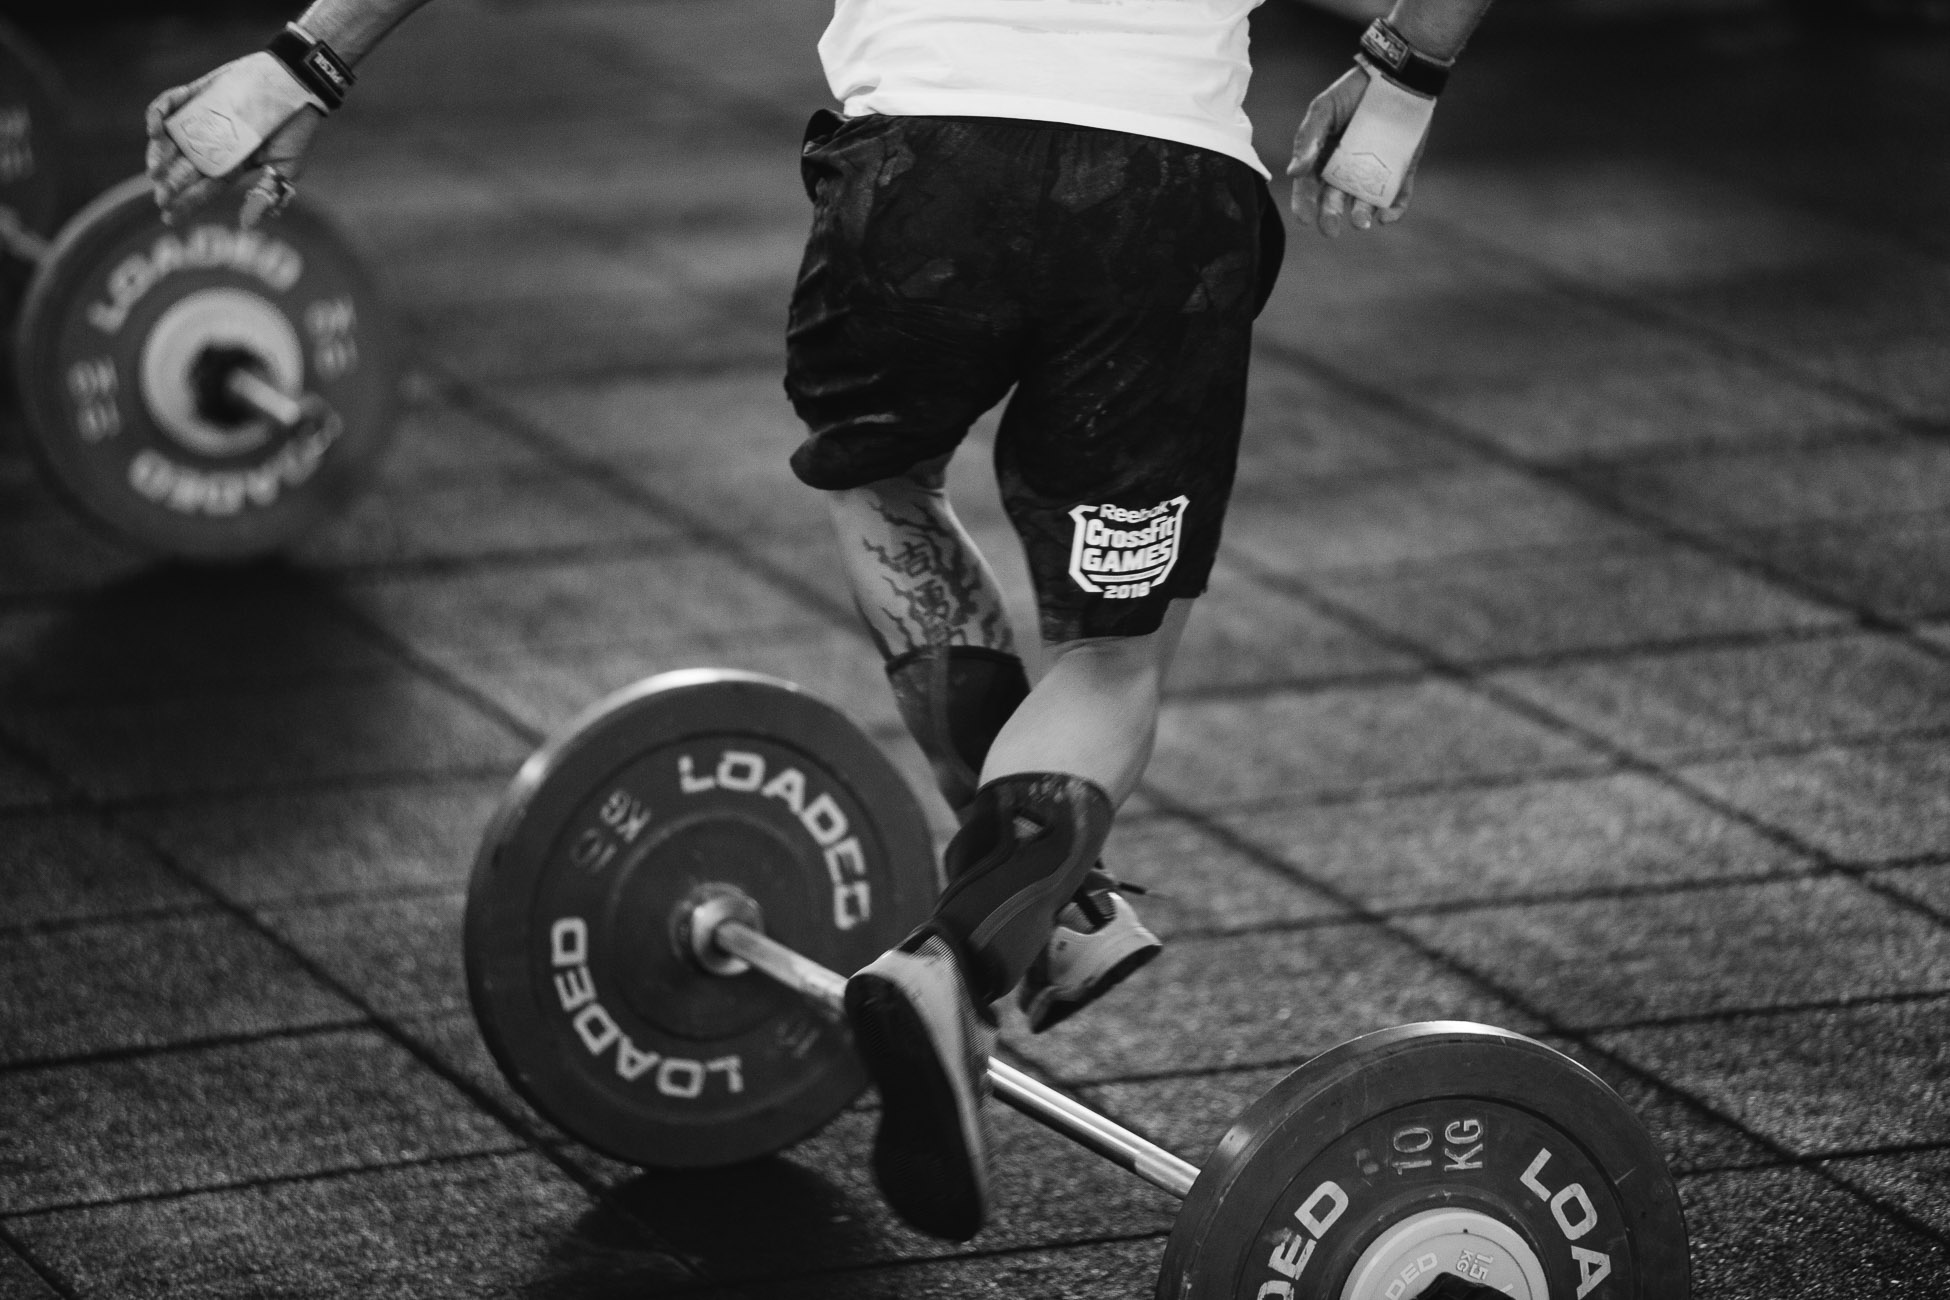 crossfit-games-open-fitness-athlete-photography-002.jpg